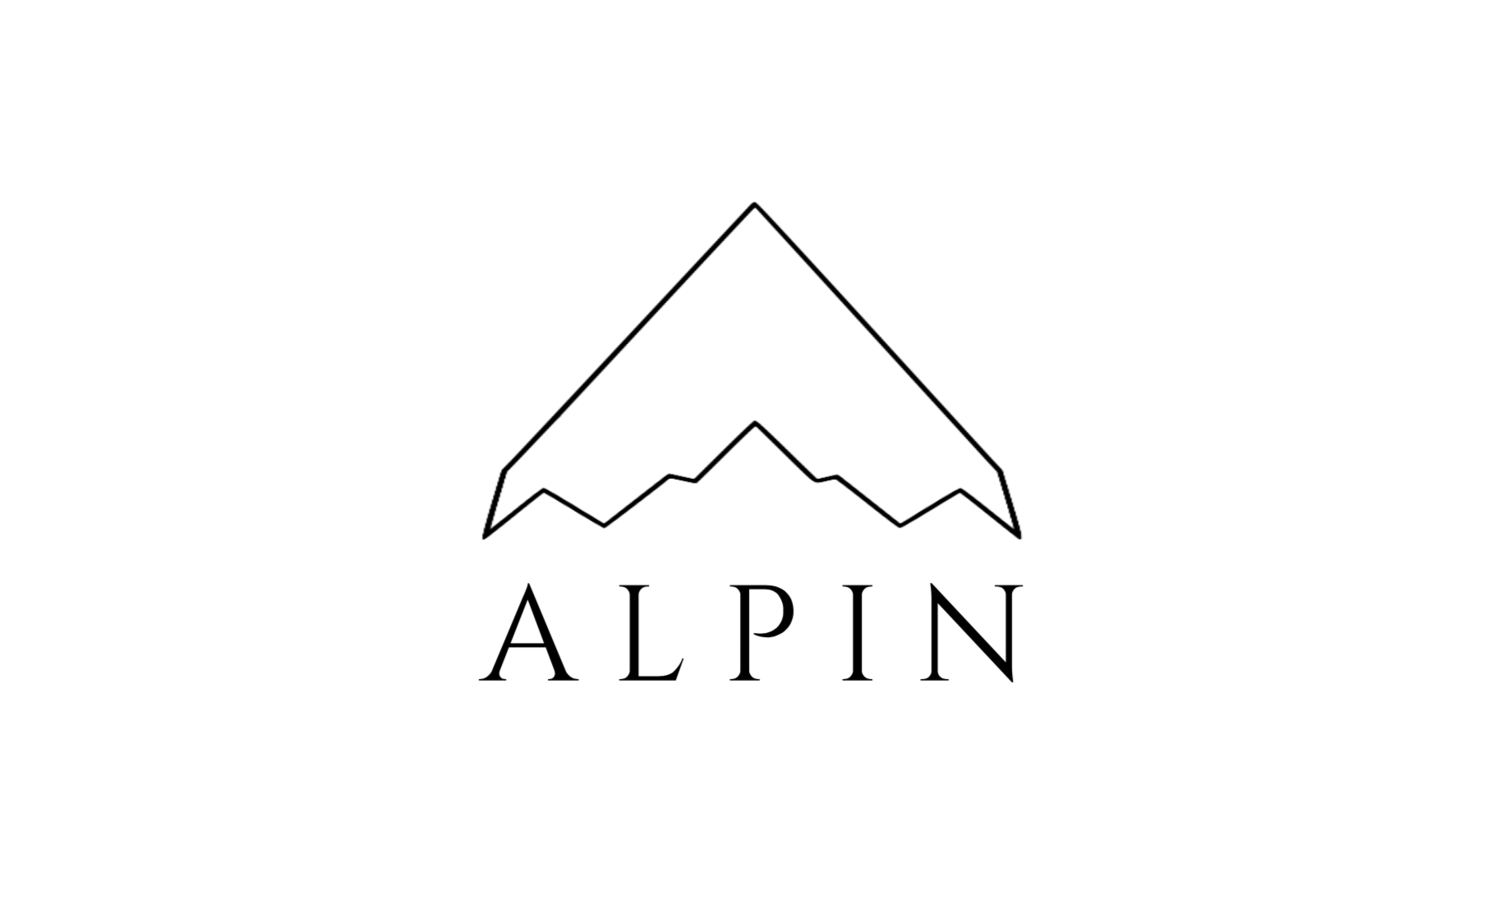 ALPIN MOUNTAIN COMPANY